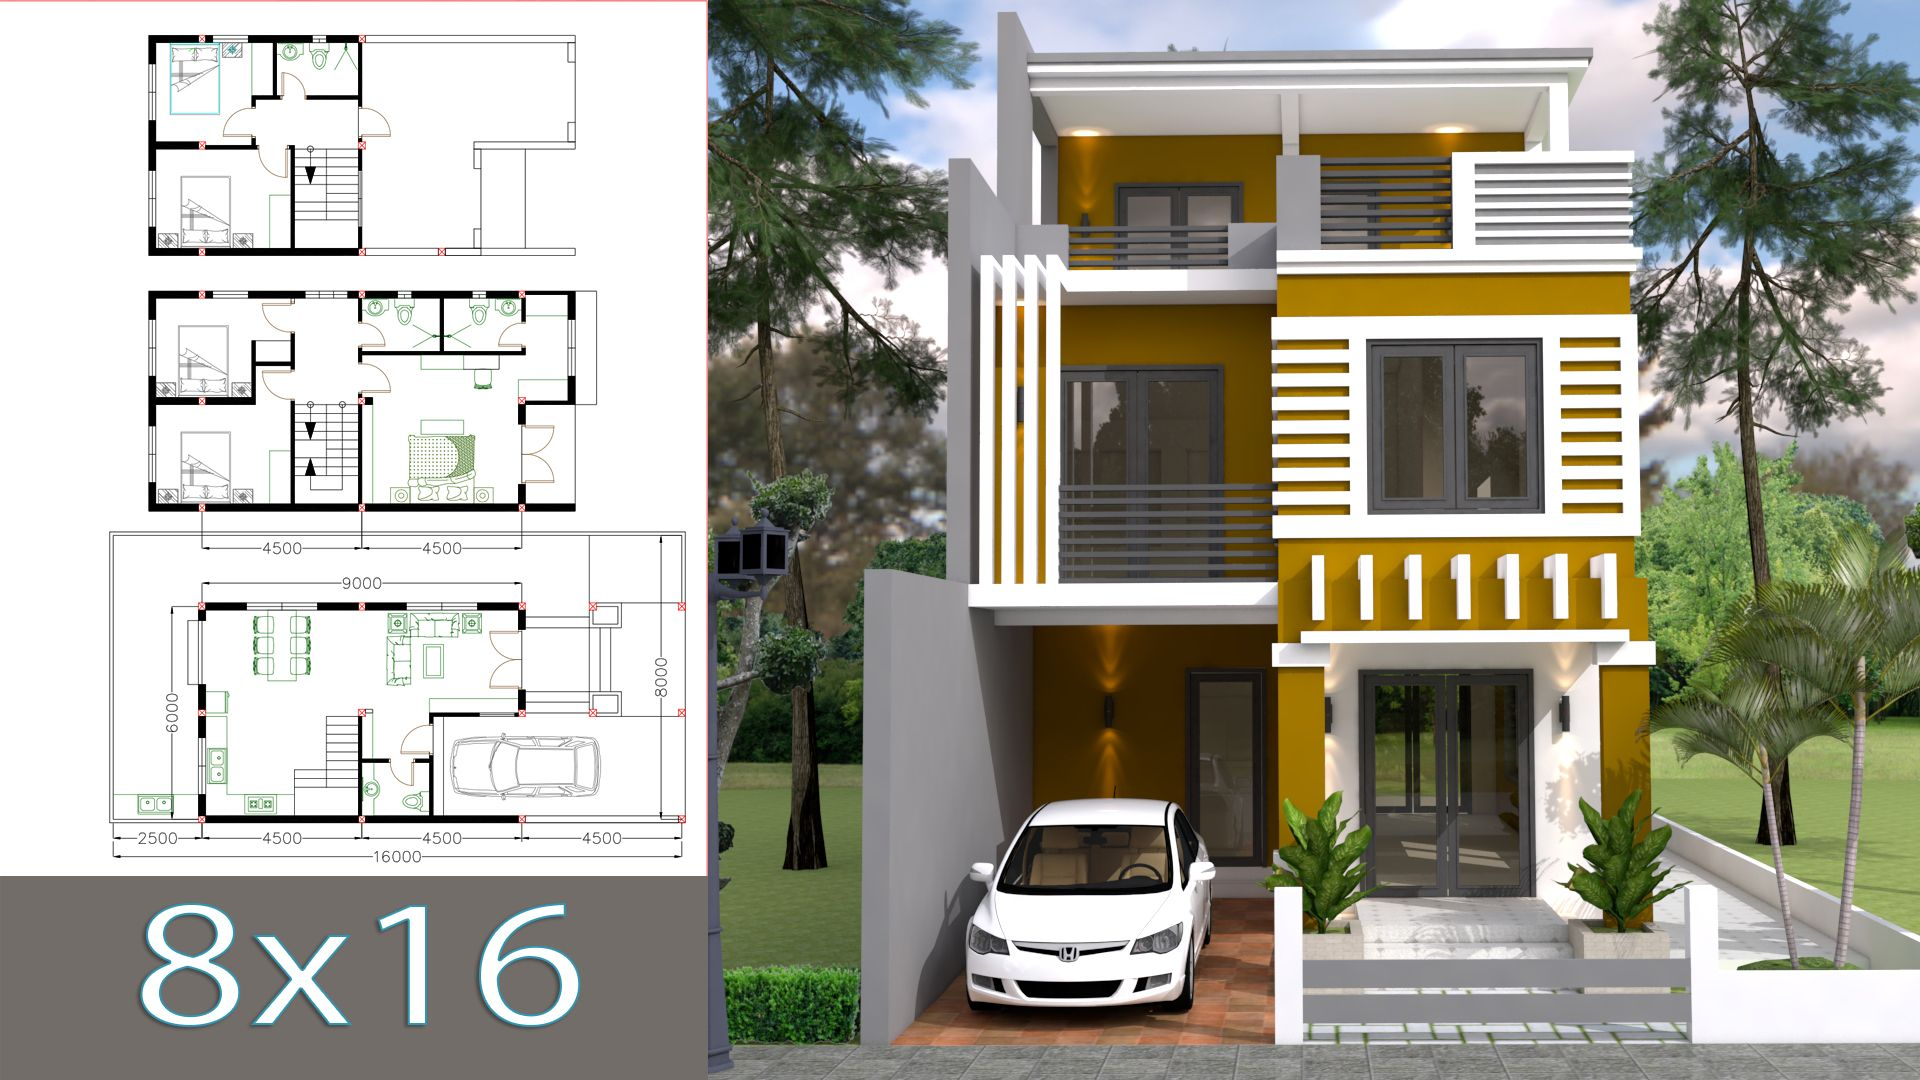 Home design plan 6x11m with 5 bedrooms plot 8x16m 2 stories villa